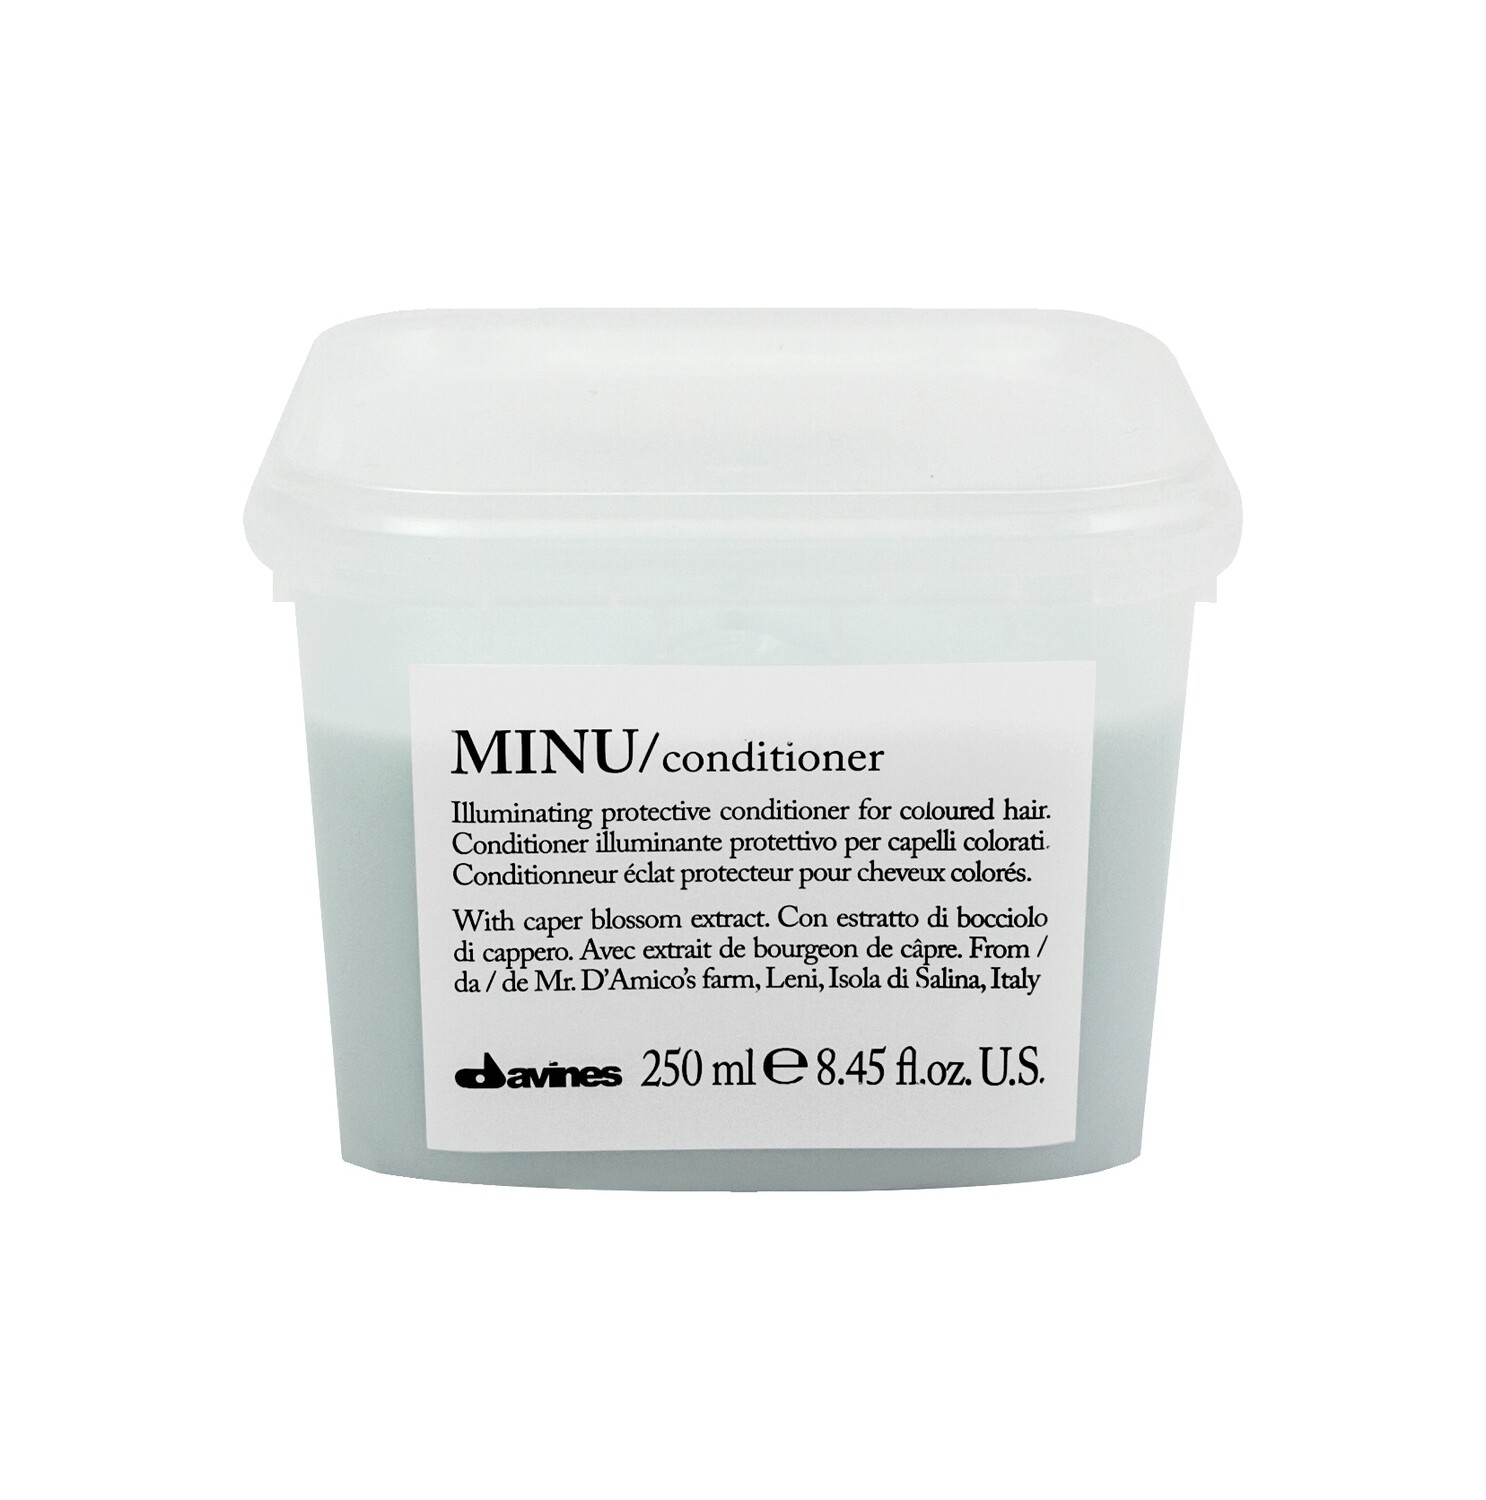 Davines MINU/Conditioner 8.45 fl. oz.